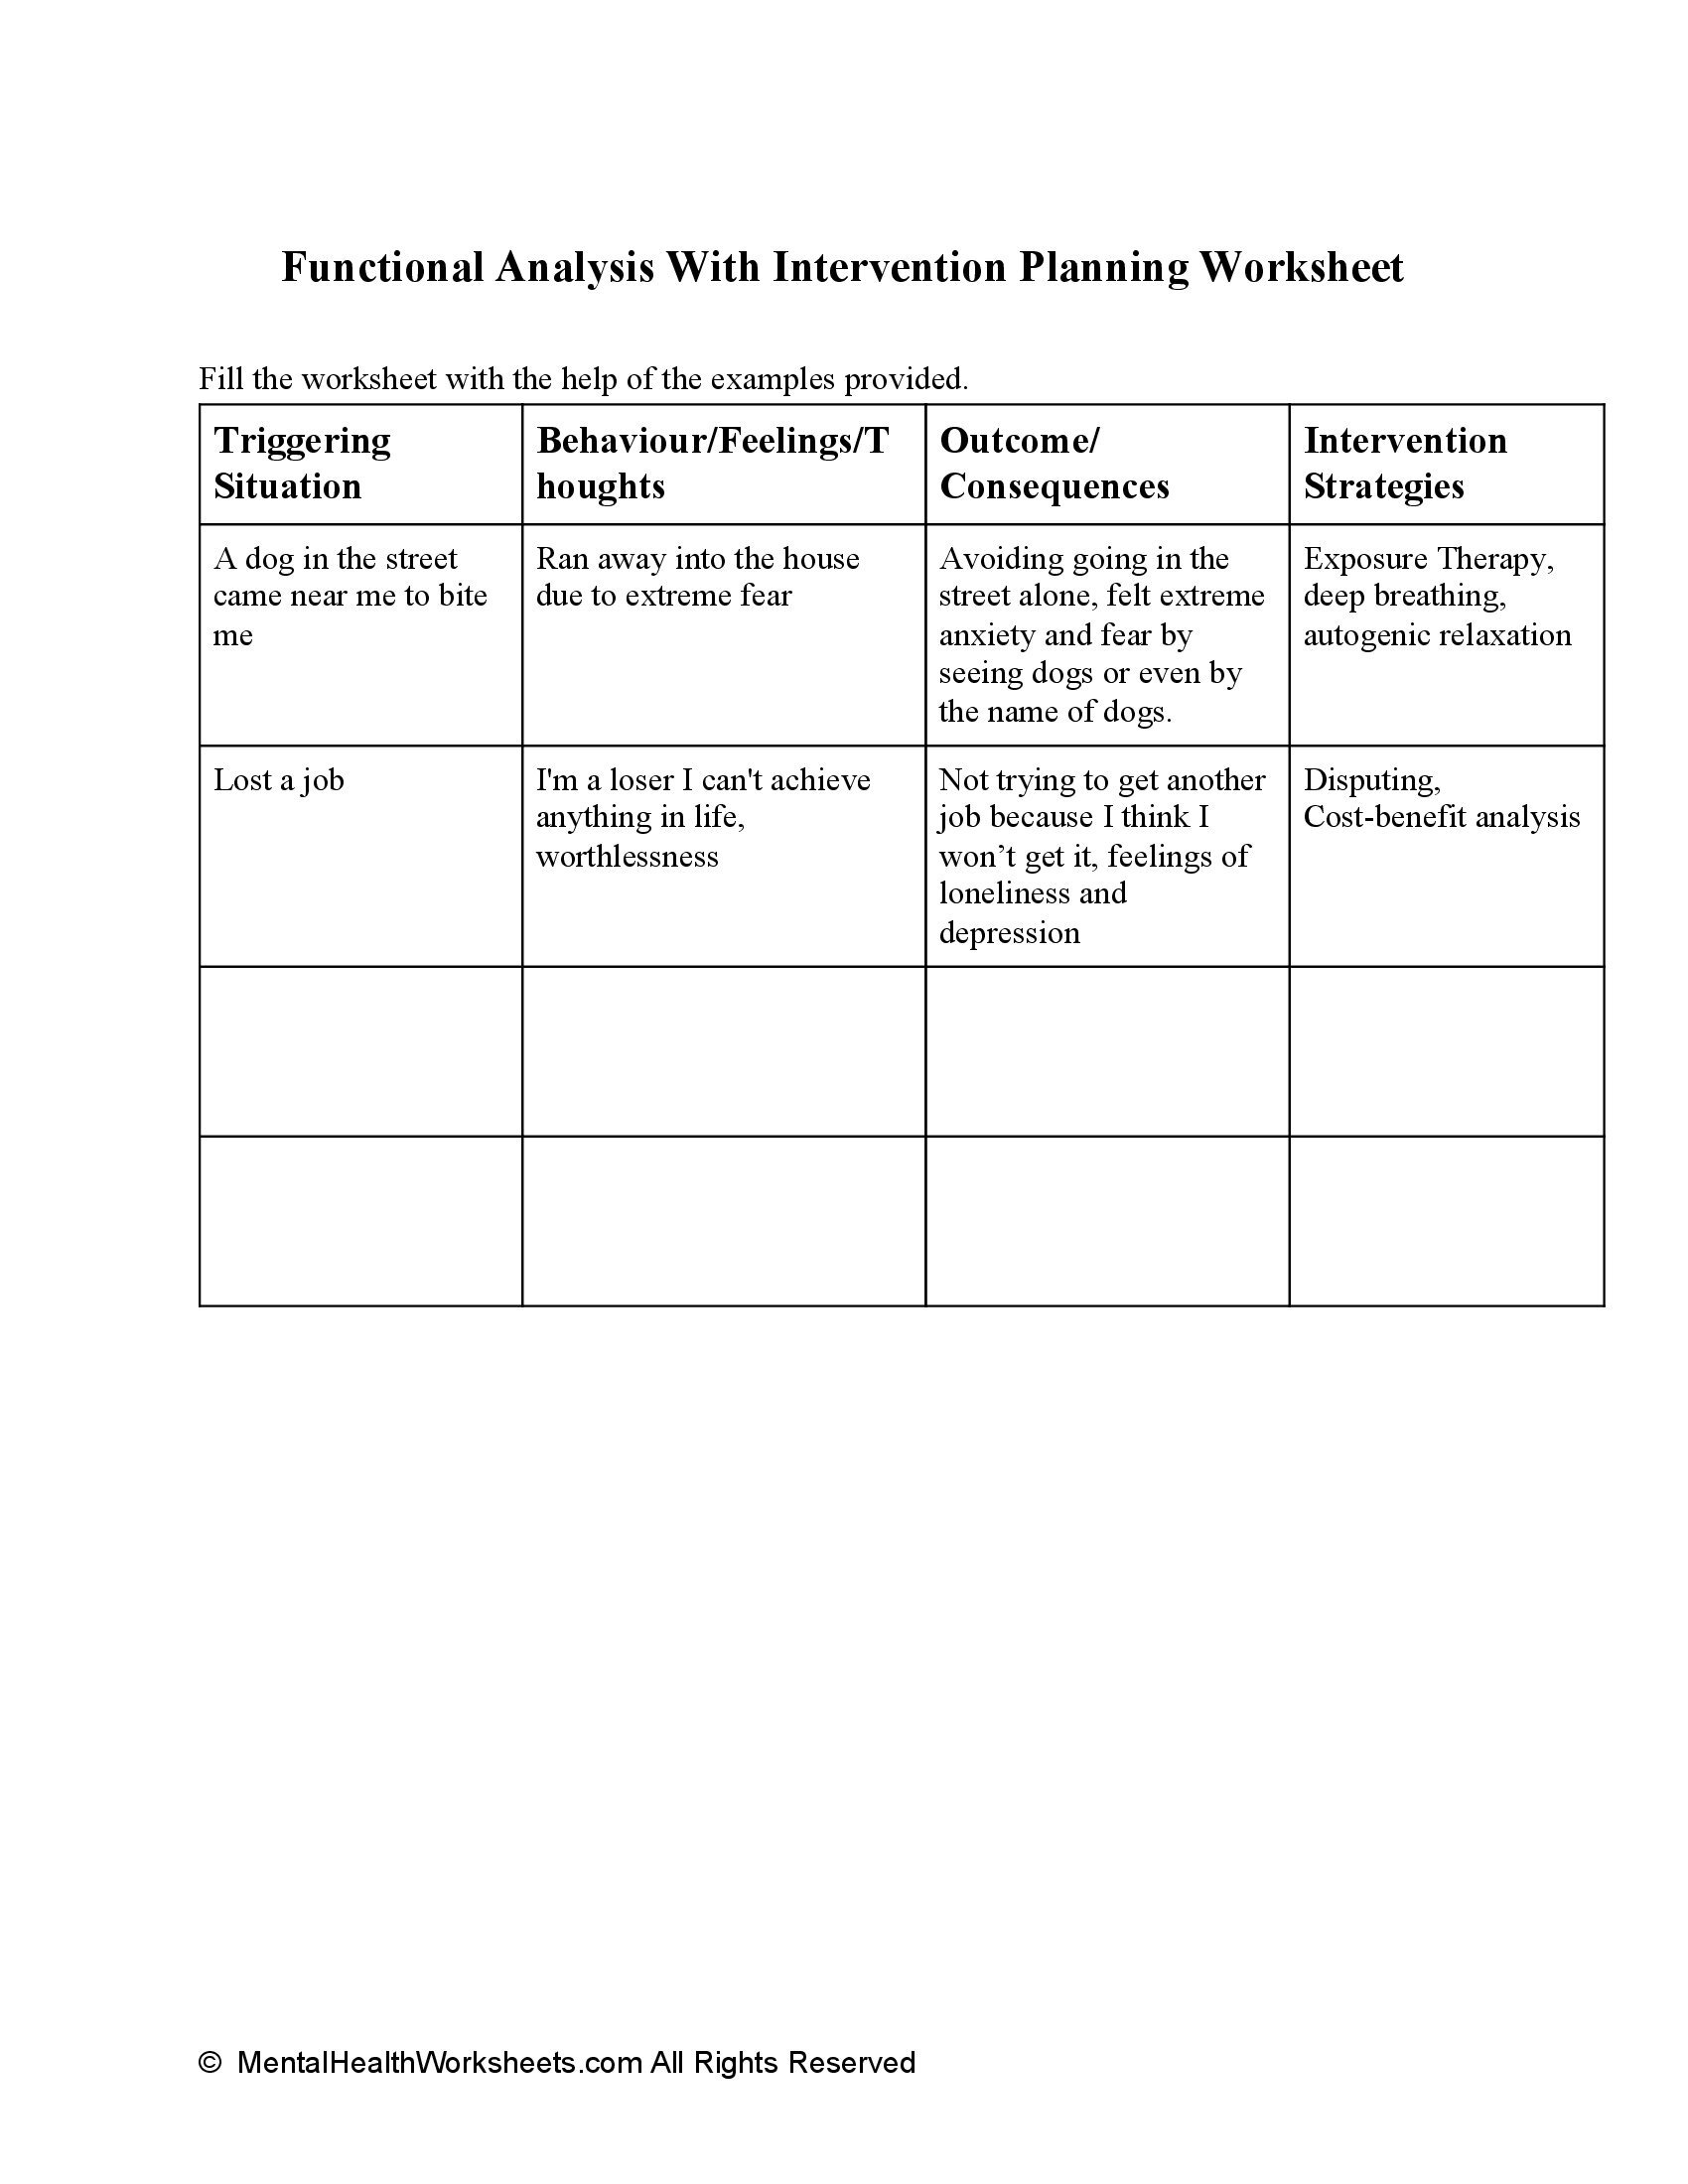 Functional Analysis With Intervention Planning Worksheet